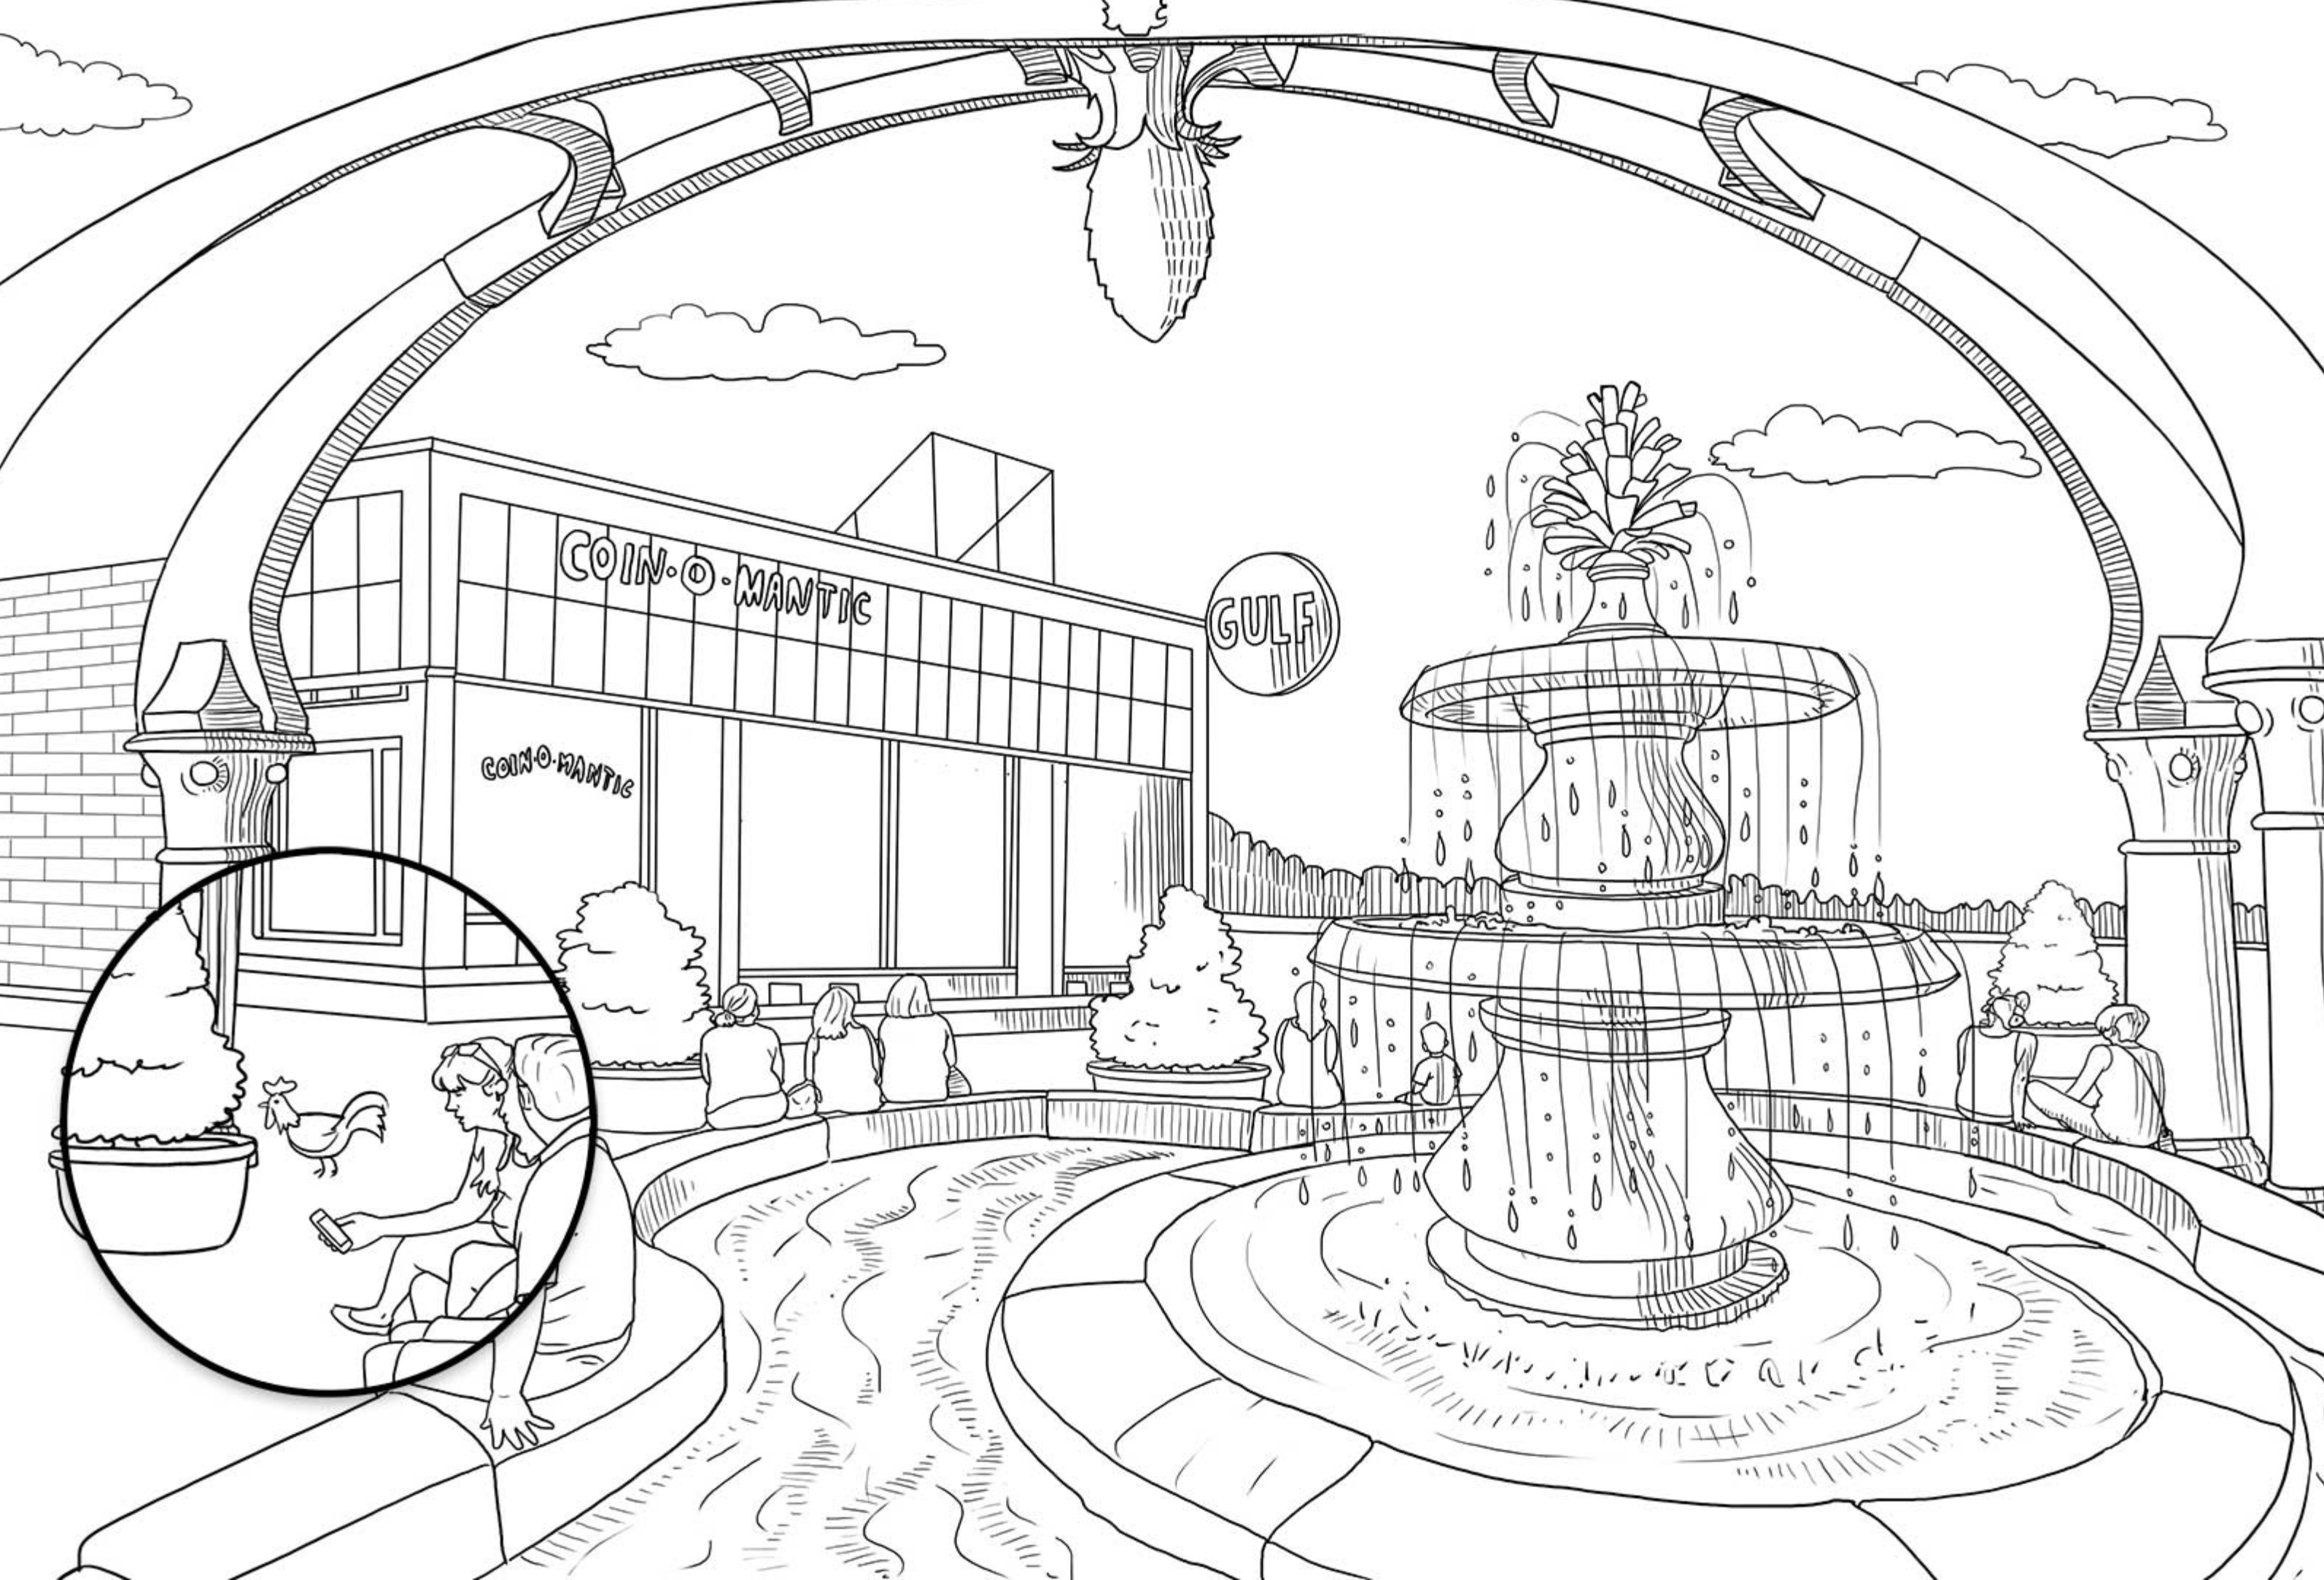 Get The Coolest Rhode Island Themed Coloring Book Rhode Island